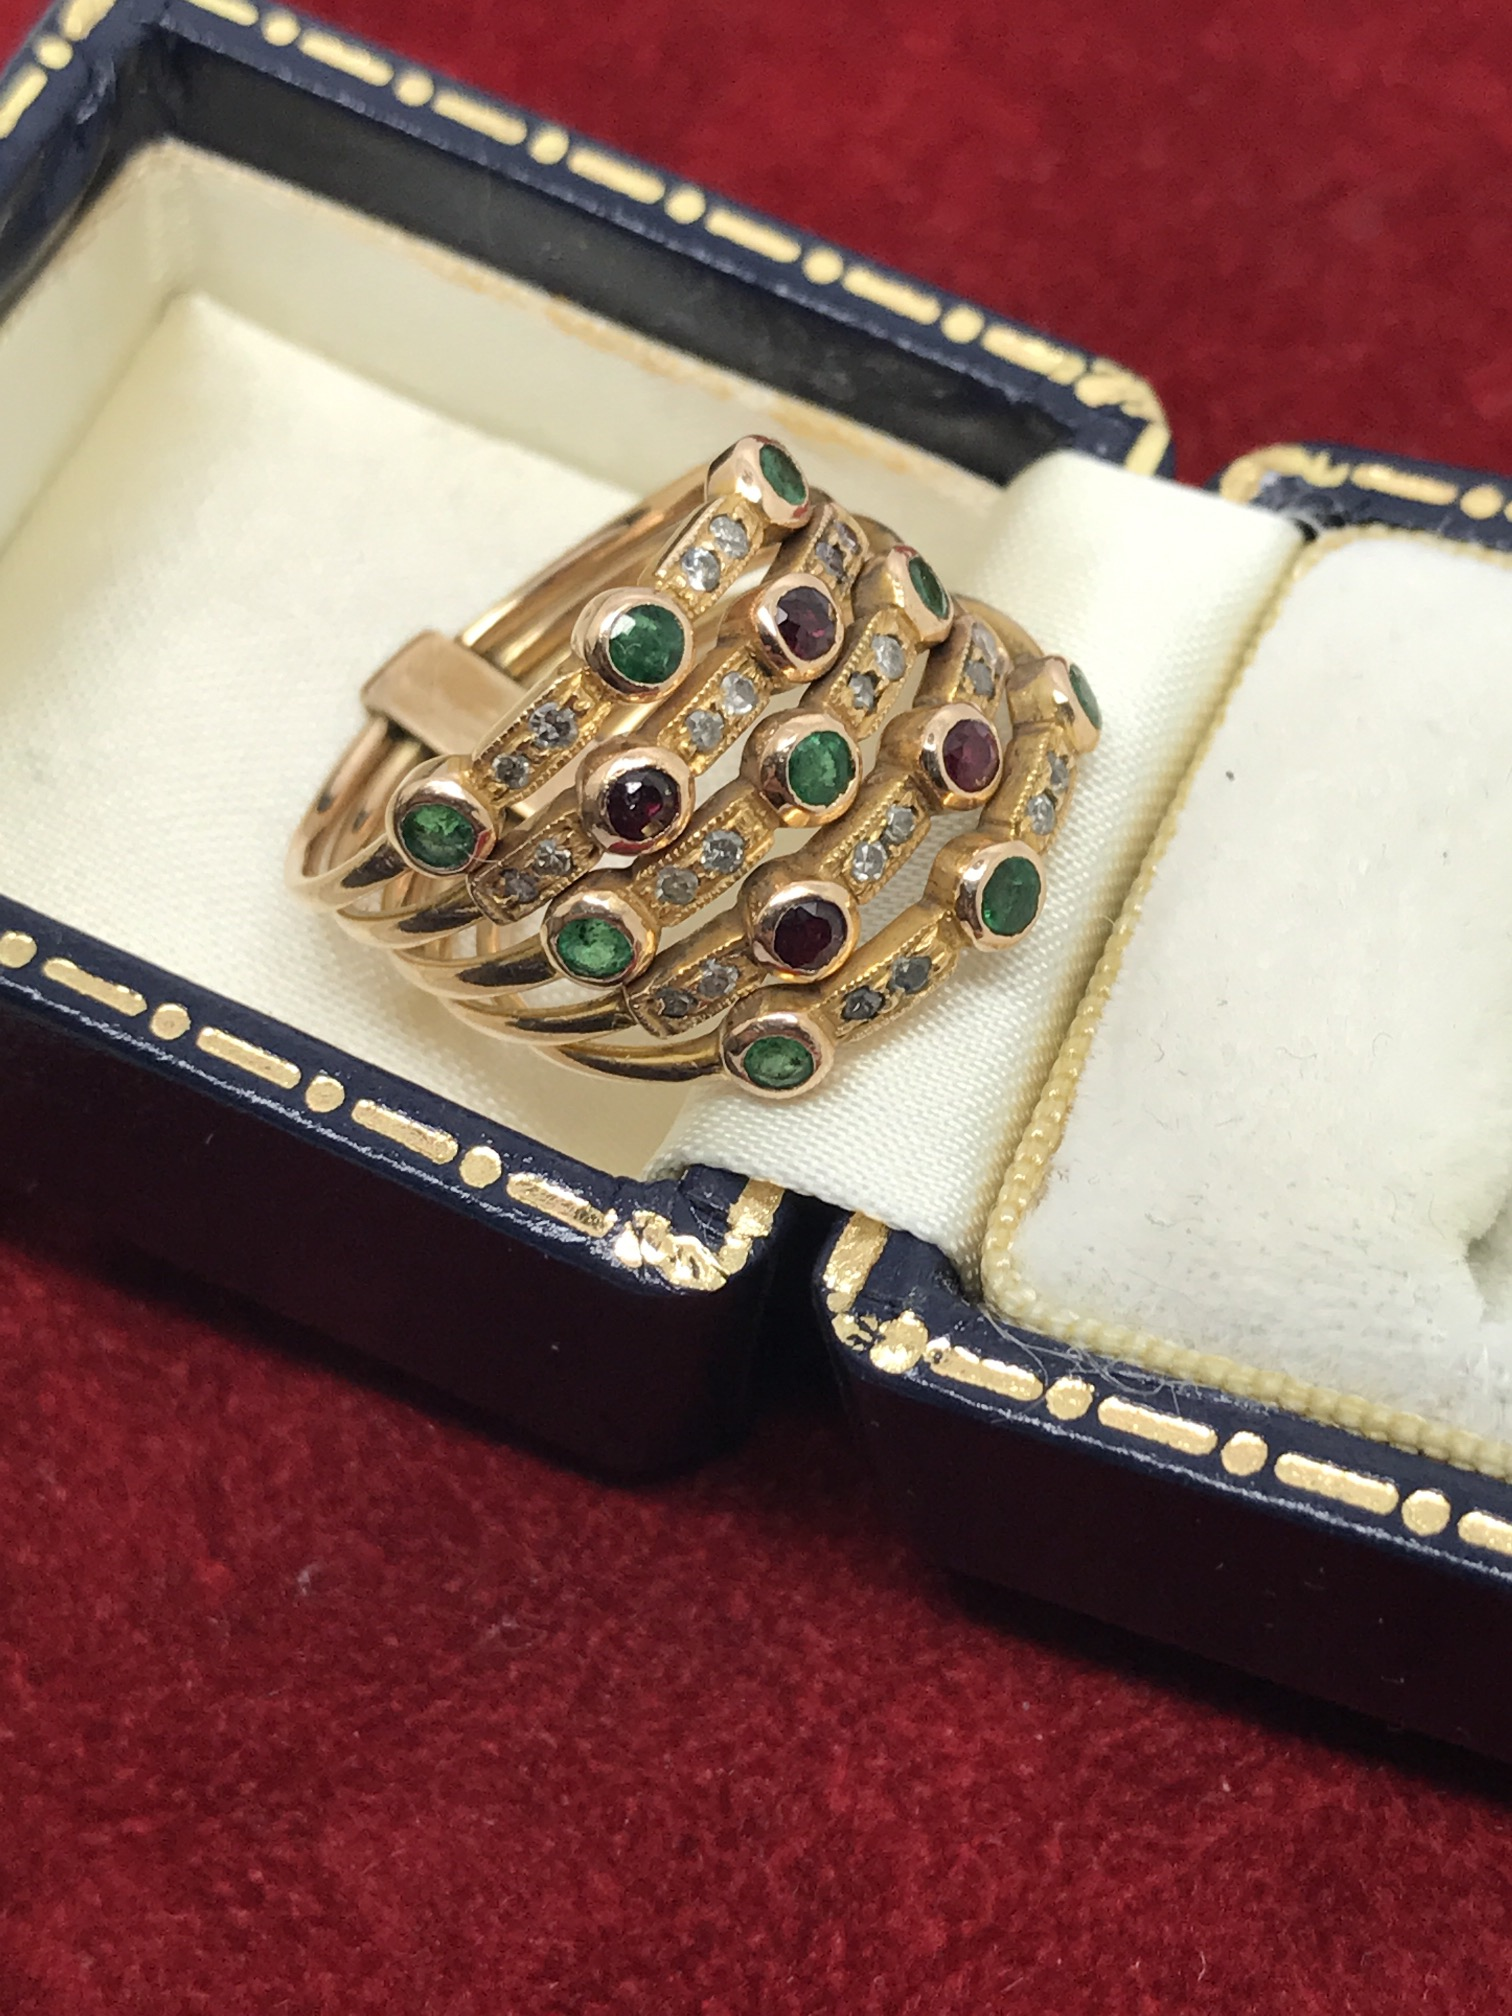 Lot 32 - IMPRESSIVE ART DECO EMERALD, RUBY & DIAMOND RING